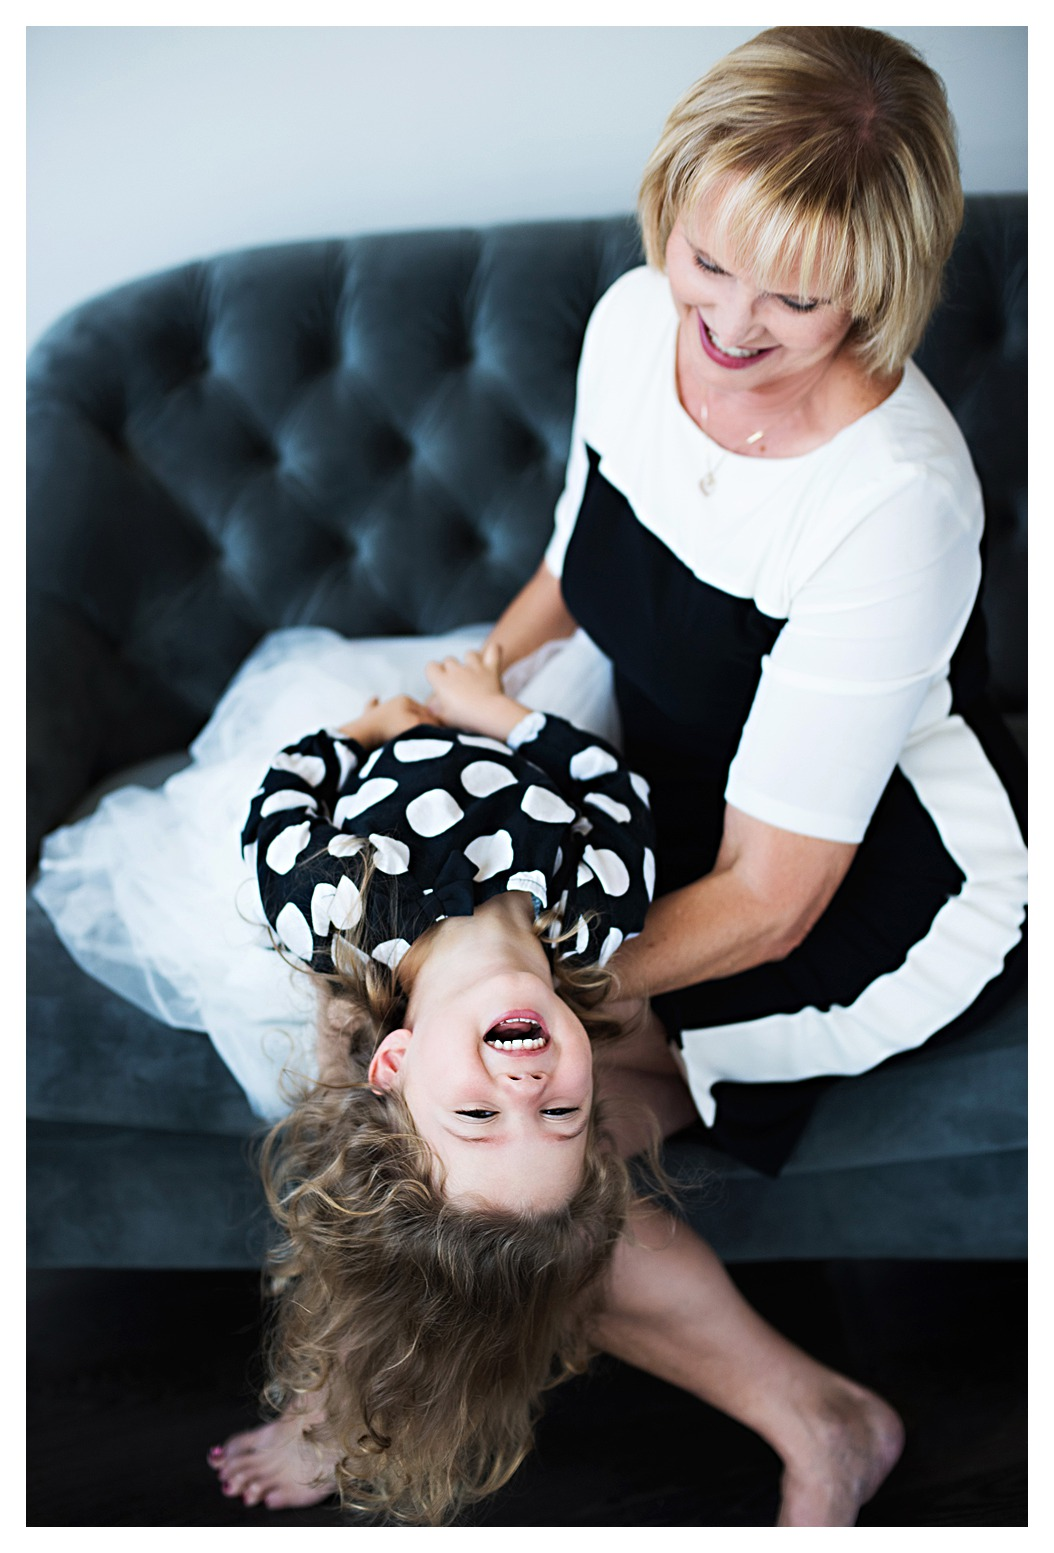 Tessa_marie_photography_mother_daughter_womens_portrait_family_photography_atlanta_0040.jpg